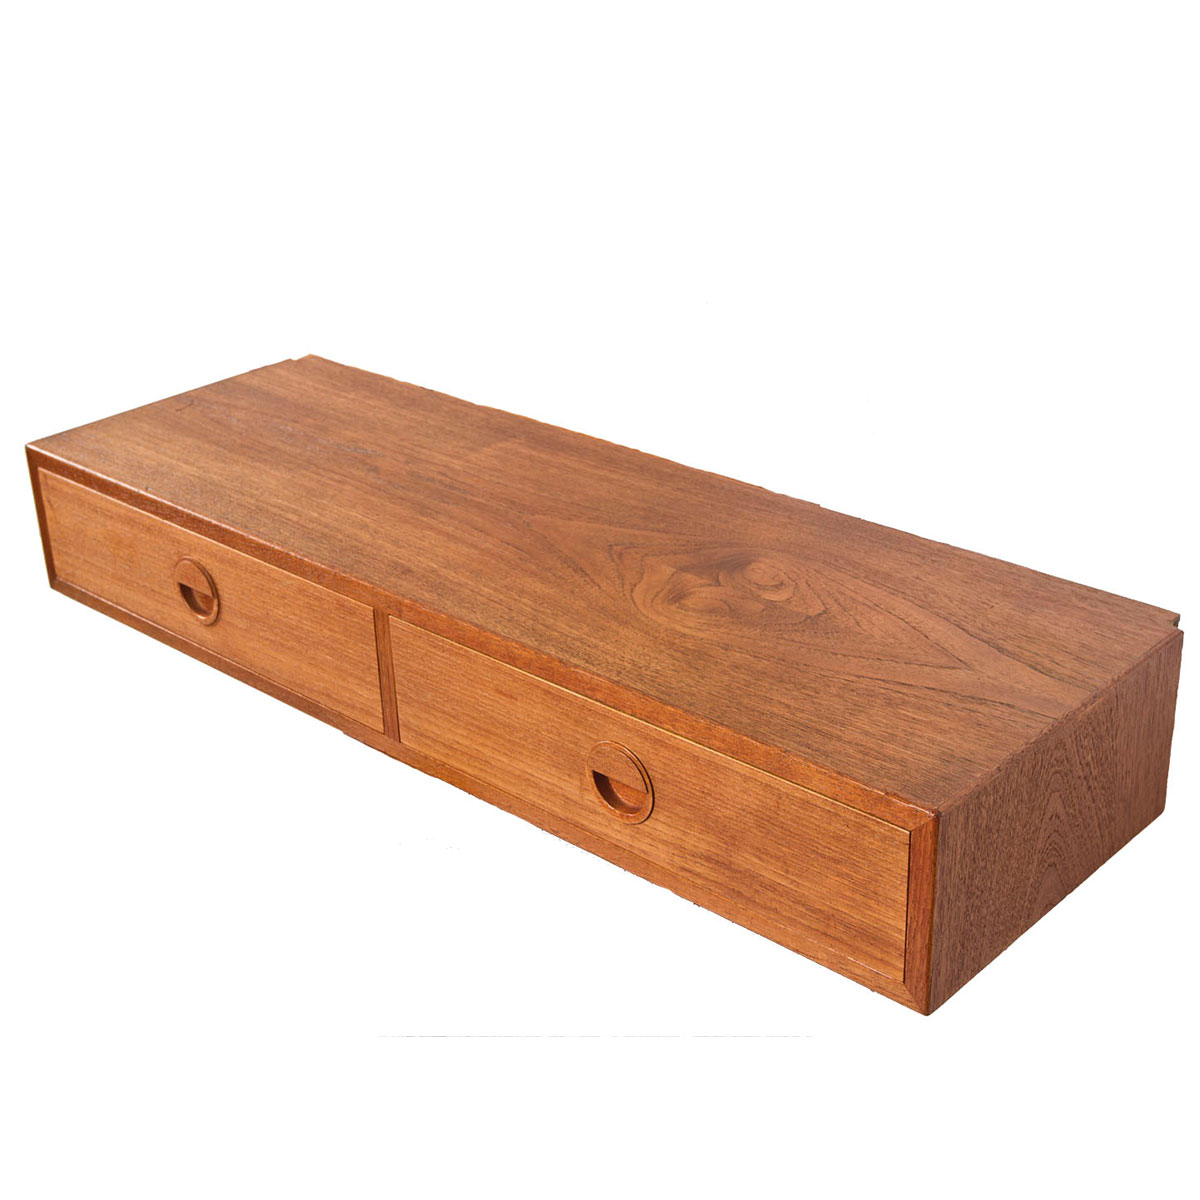 HG Danish Modern Teak Hanging Drawer Storage